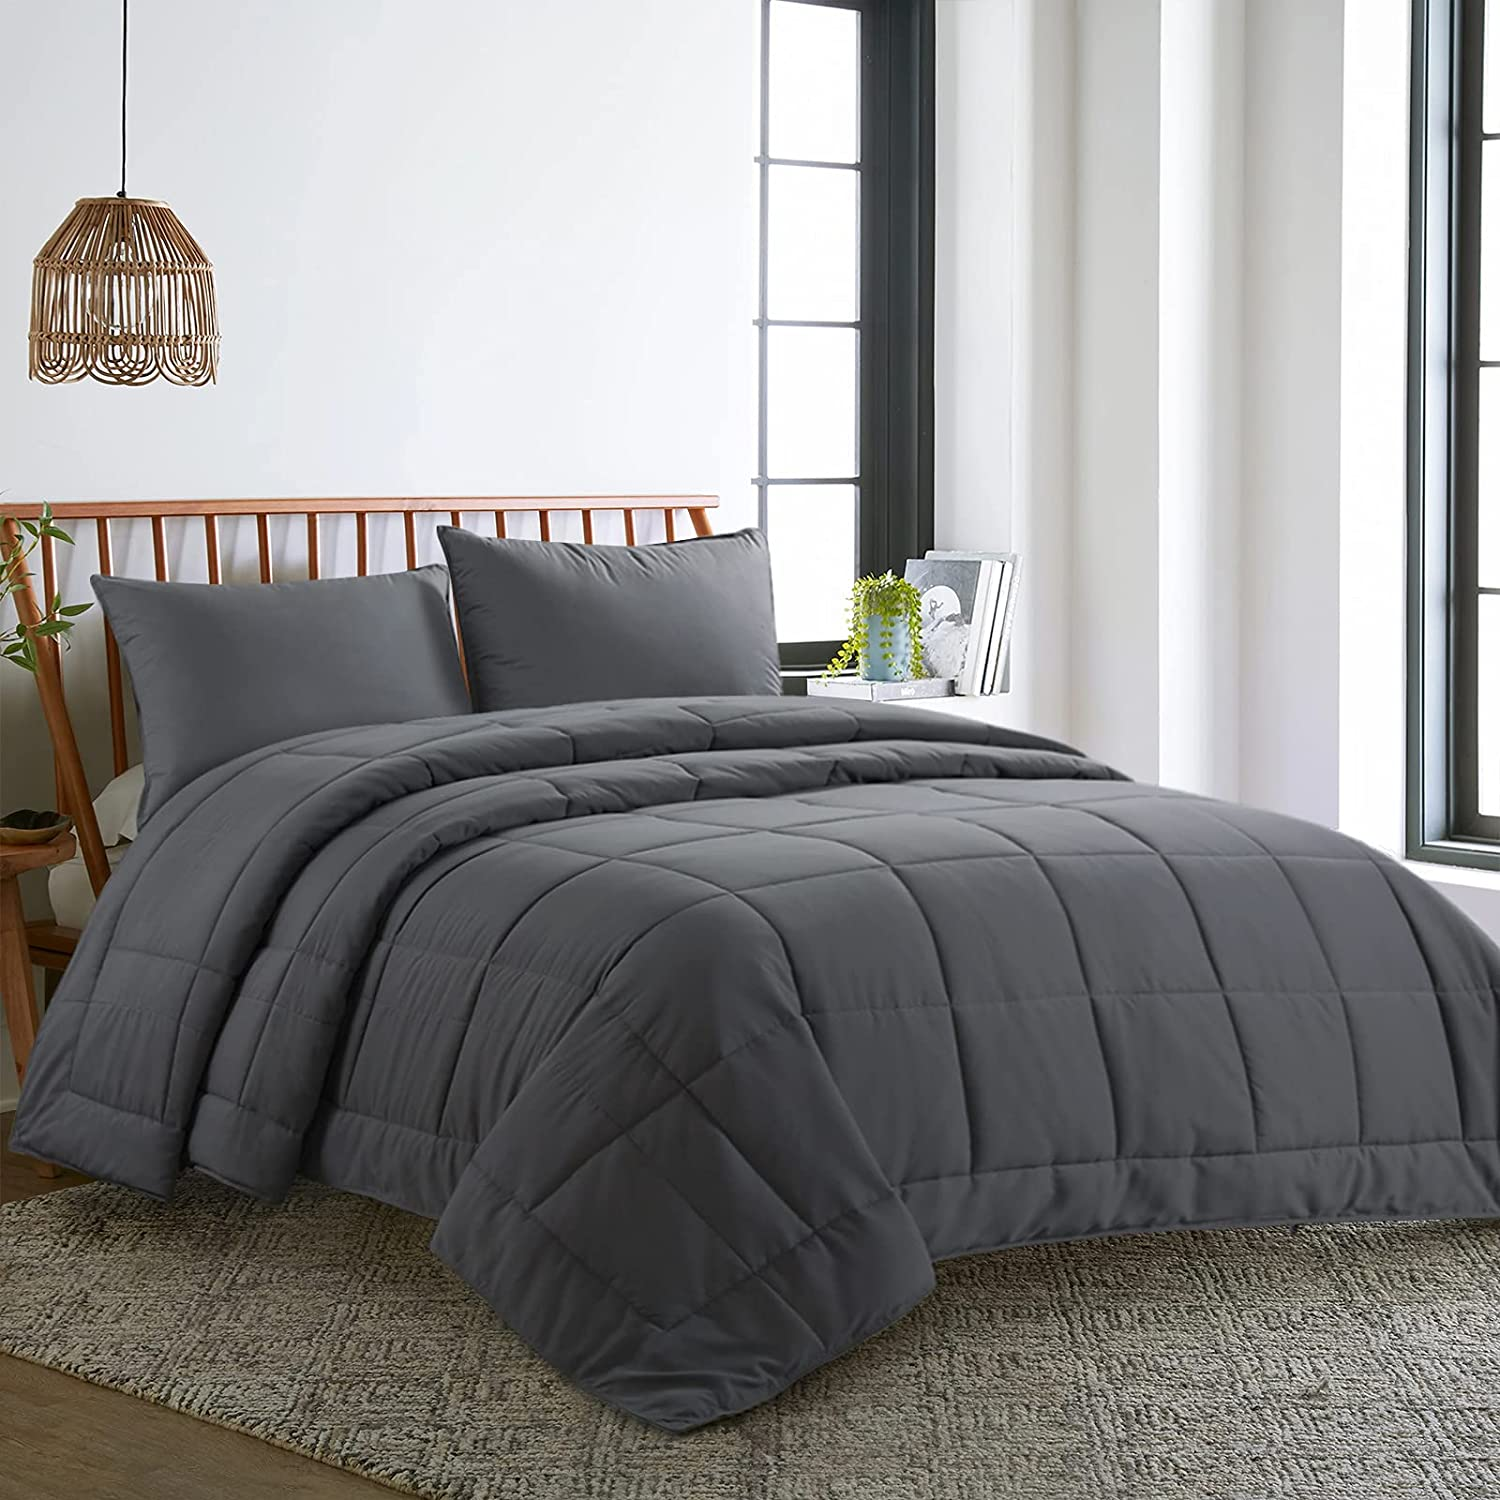 HOMBYS Ultra Import Max 90% OFF Soft Lightweight King Grey Oversized Bamboo-Filled